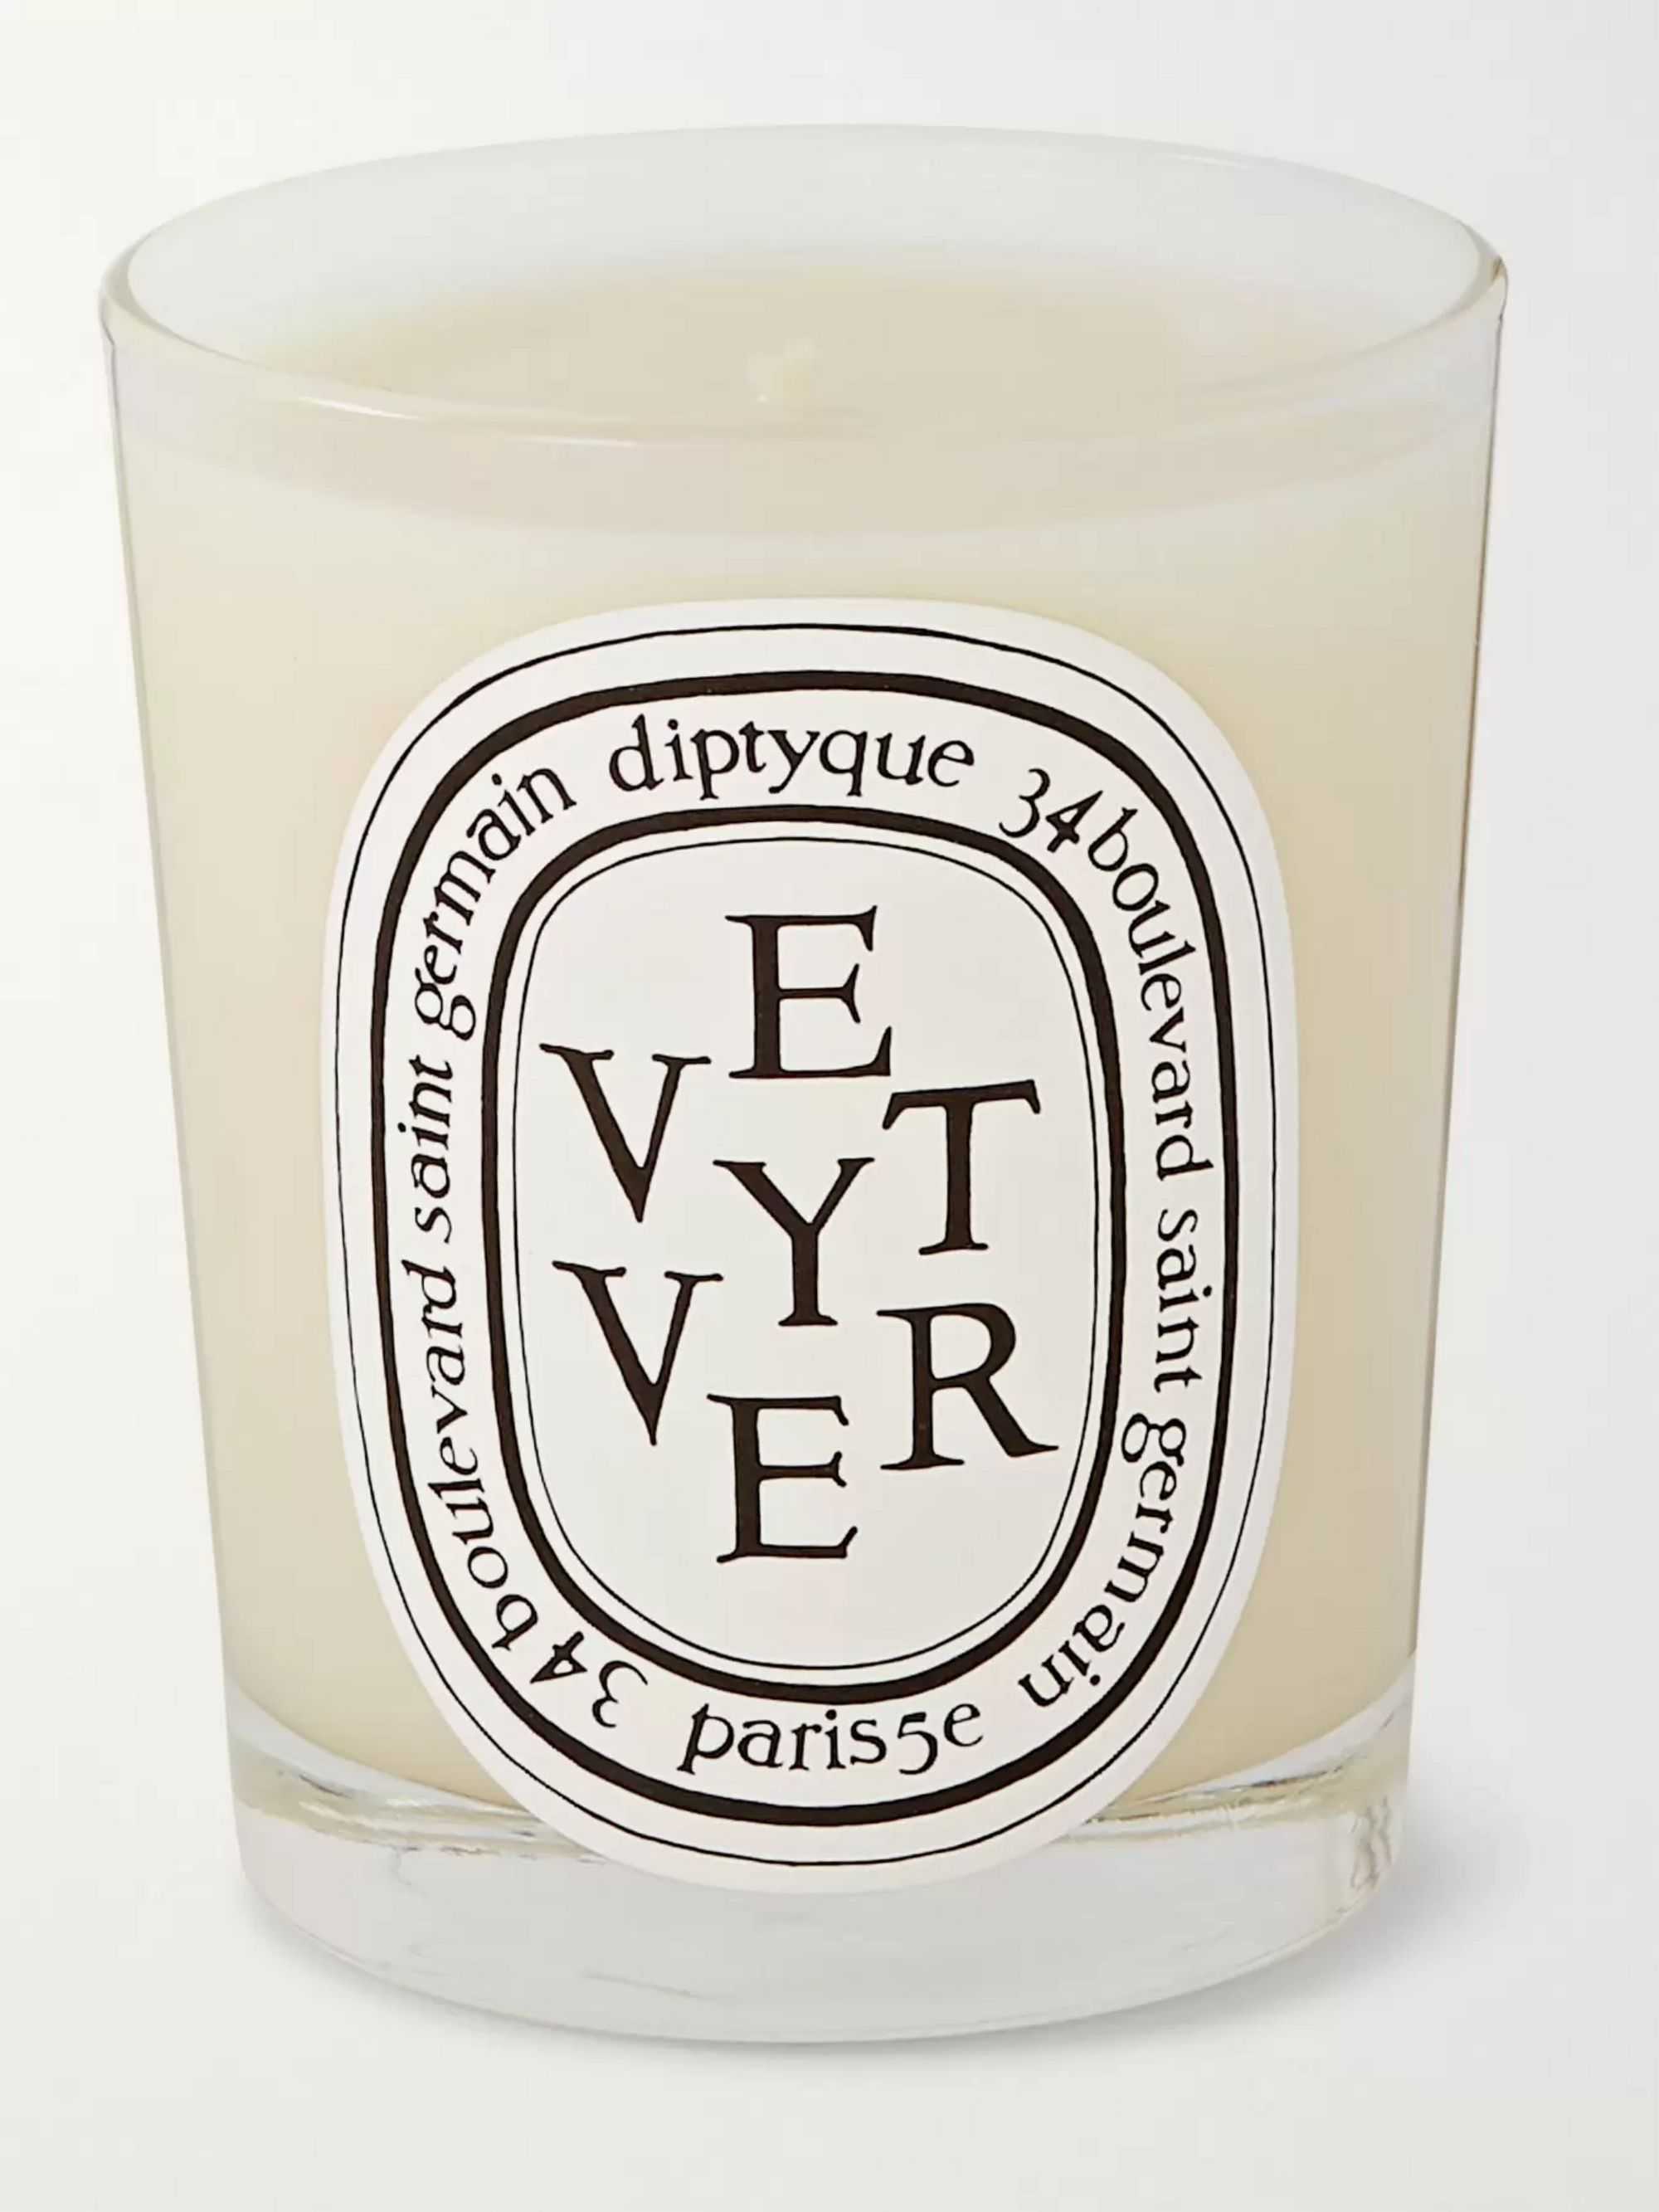 Diptyque Vetiver Scented Candle, 190g